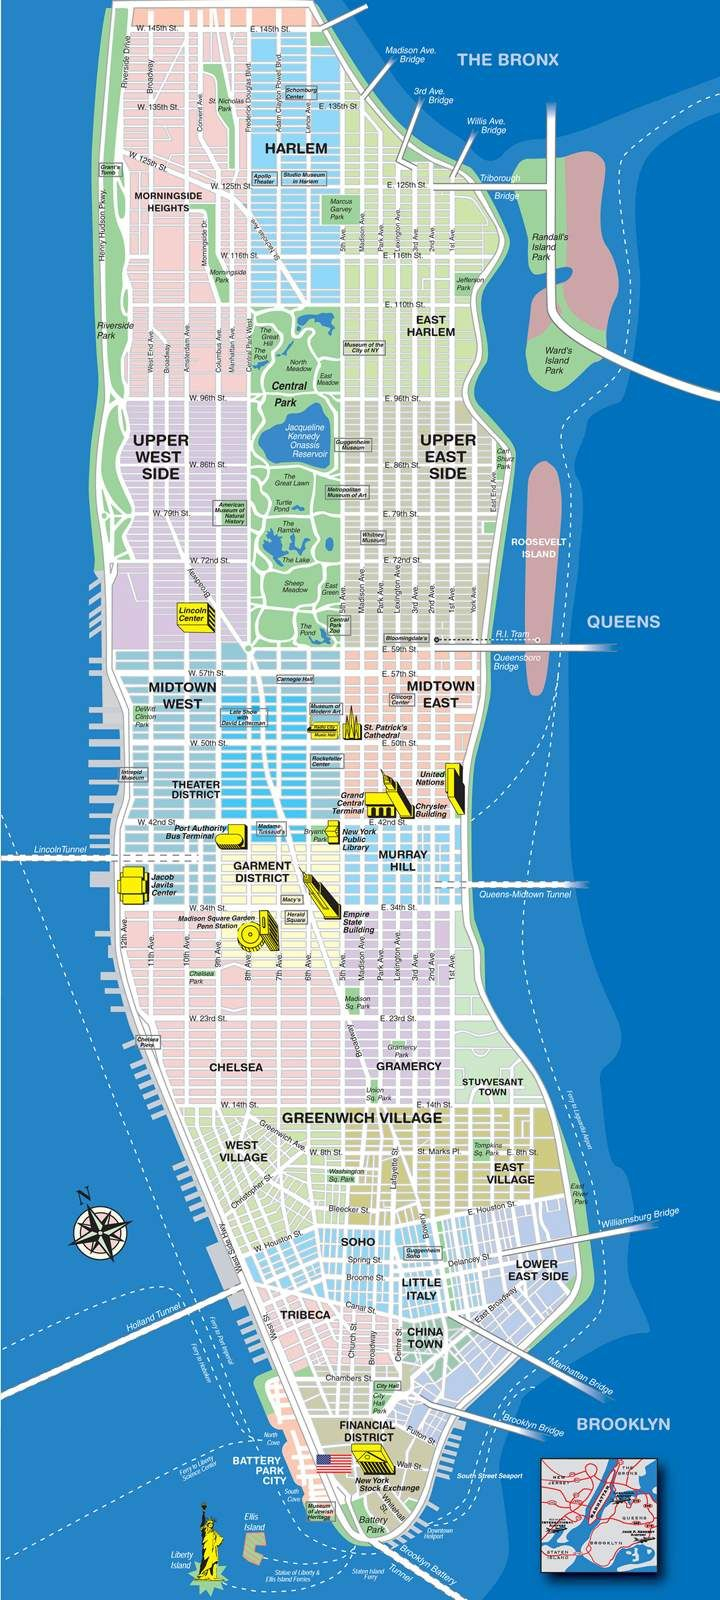 High-Resolution Map Of Manhattan For Print Or Download | Usa Travel - New York Downtown Map Printable